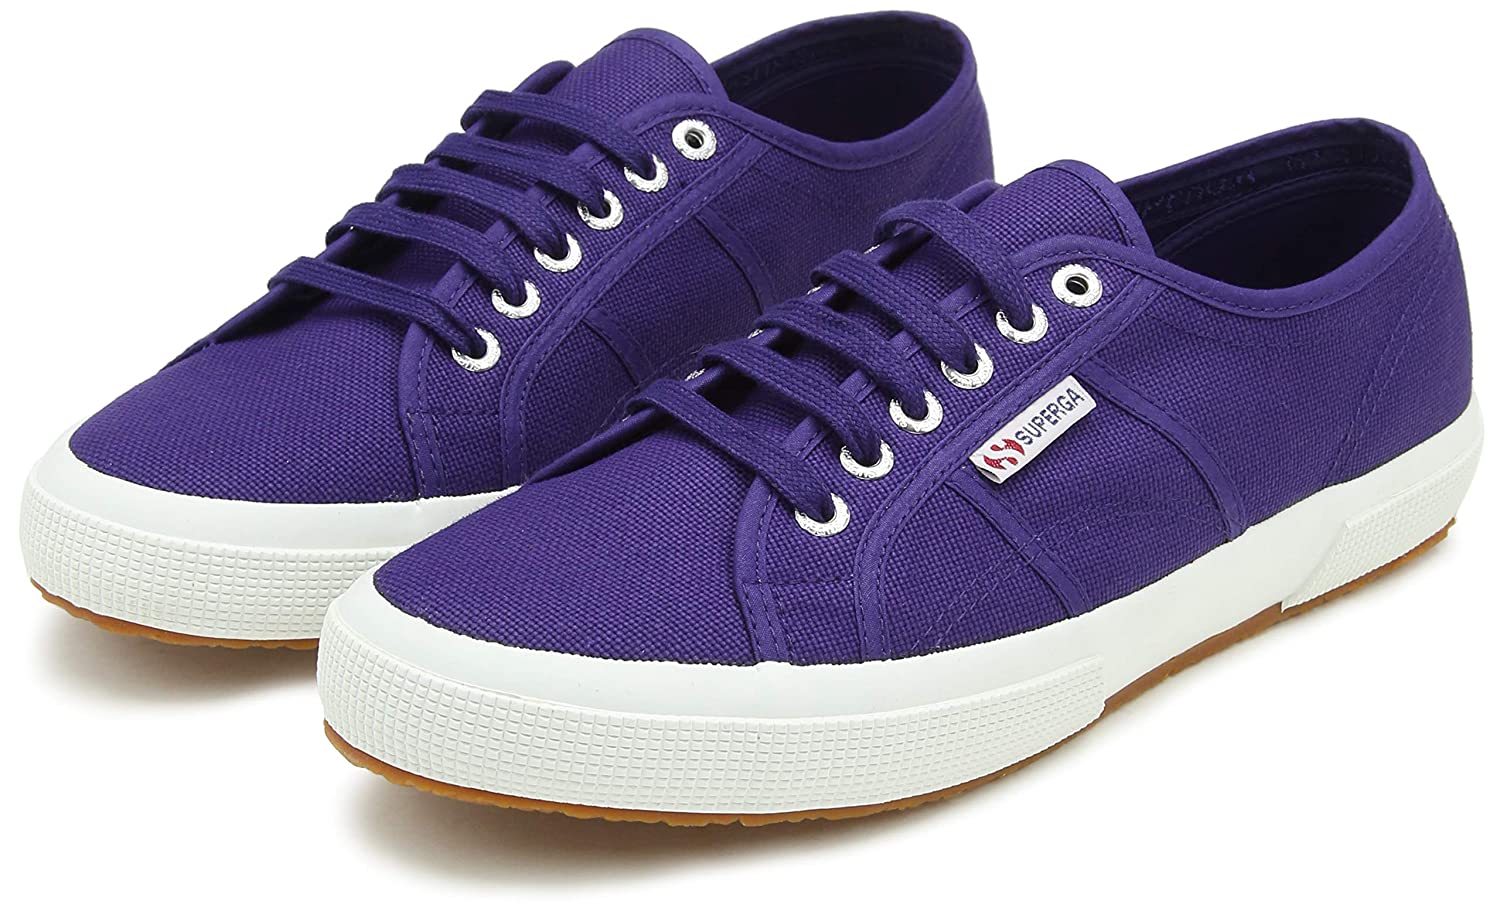 2750 Adulte Baskets Cotu Superga Mixte Classic fW0dqqw6